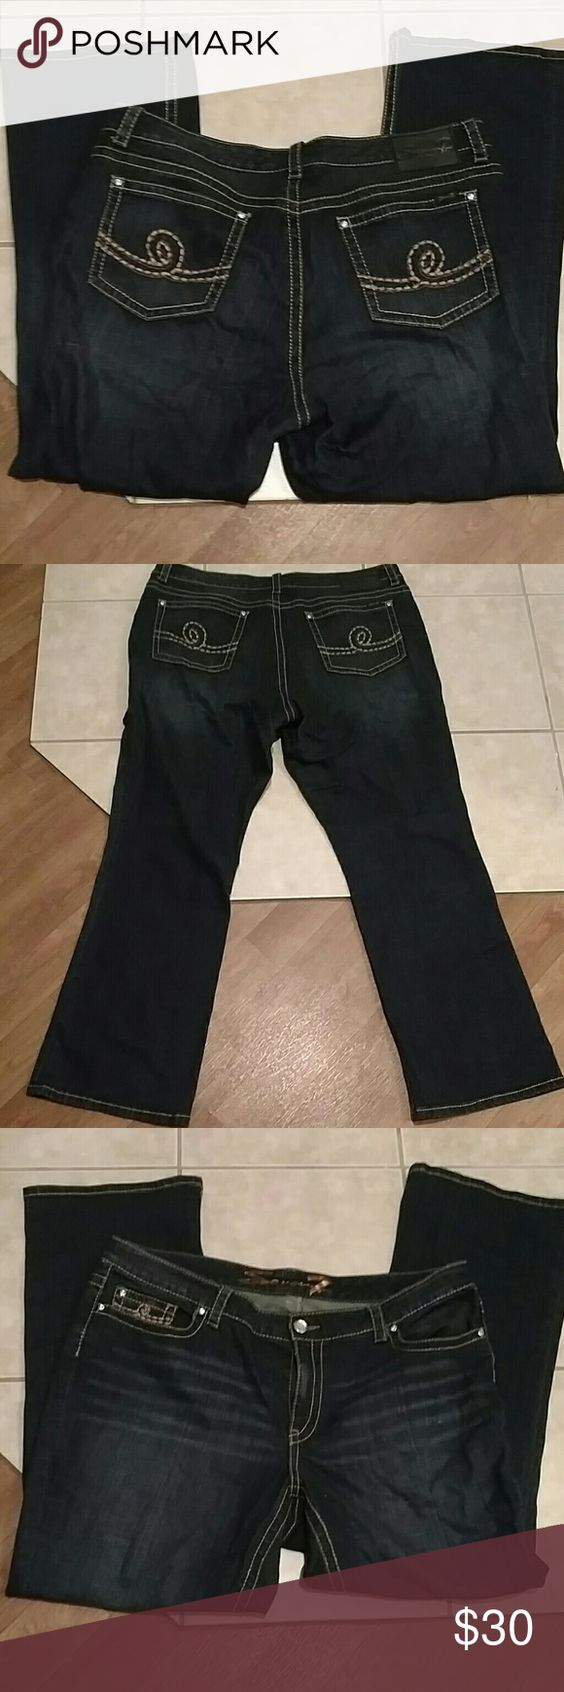 Seven jeans Great pair of seven jeans, dark rich blue with very minimal wear. Inseam is 33 inches, rise is 9 inches and waist flat measures 21.25 inches. These are size 22 with 98% cotton and 2% spandex so they have a nice stretch Seven7 Jeans Boot Cut